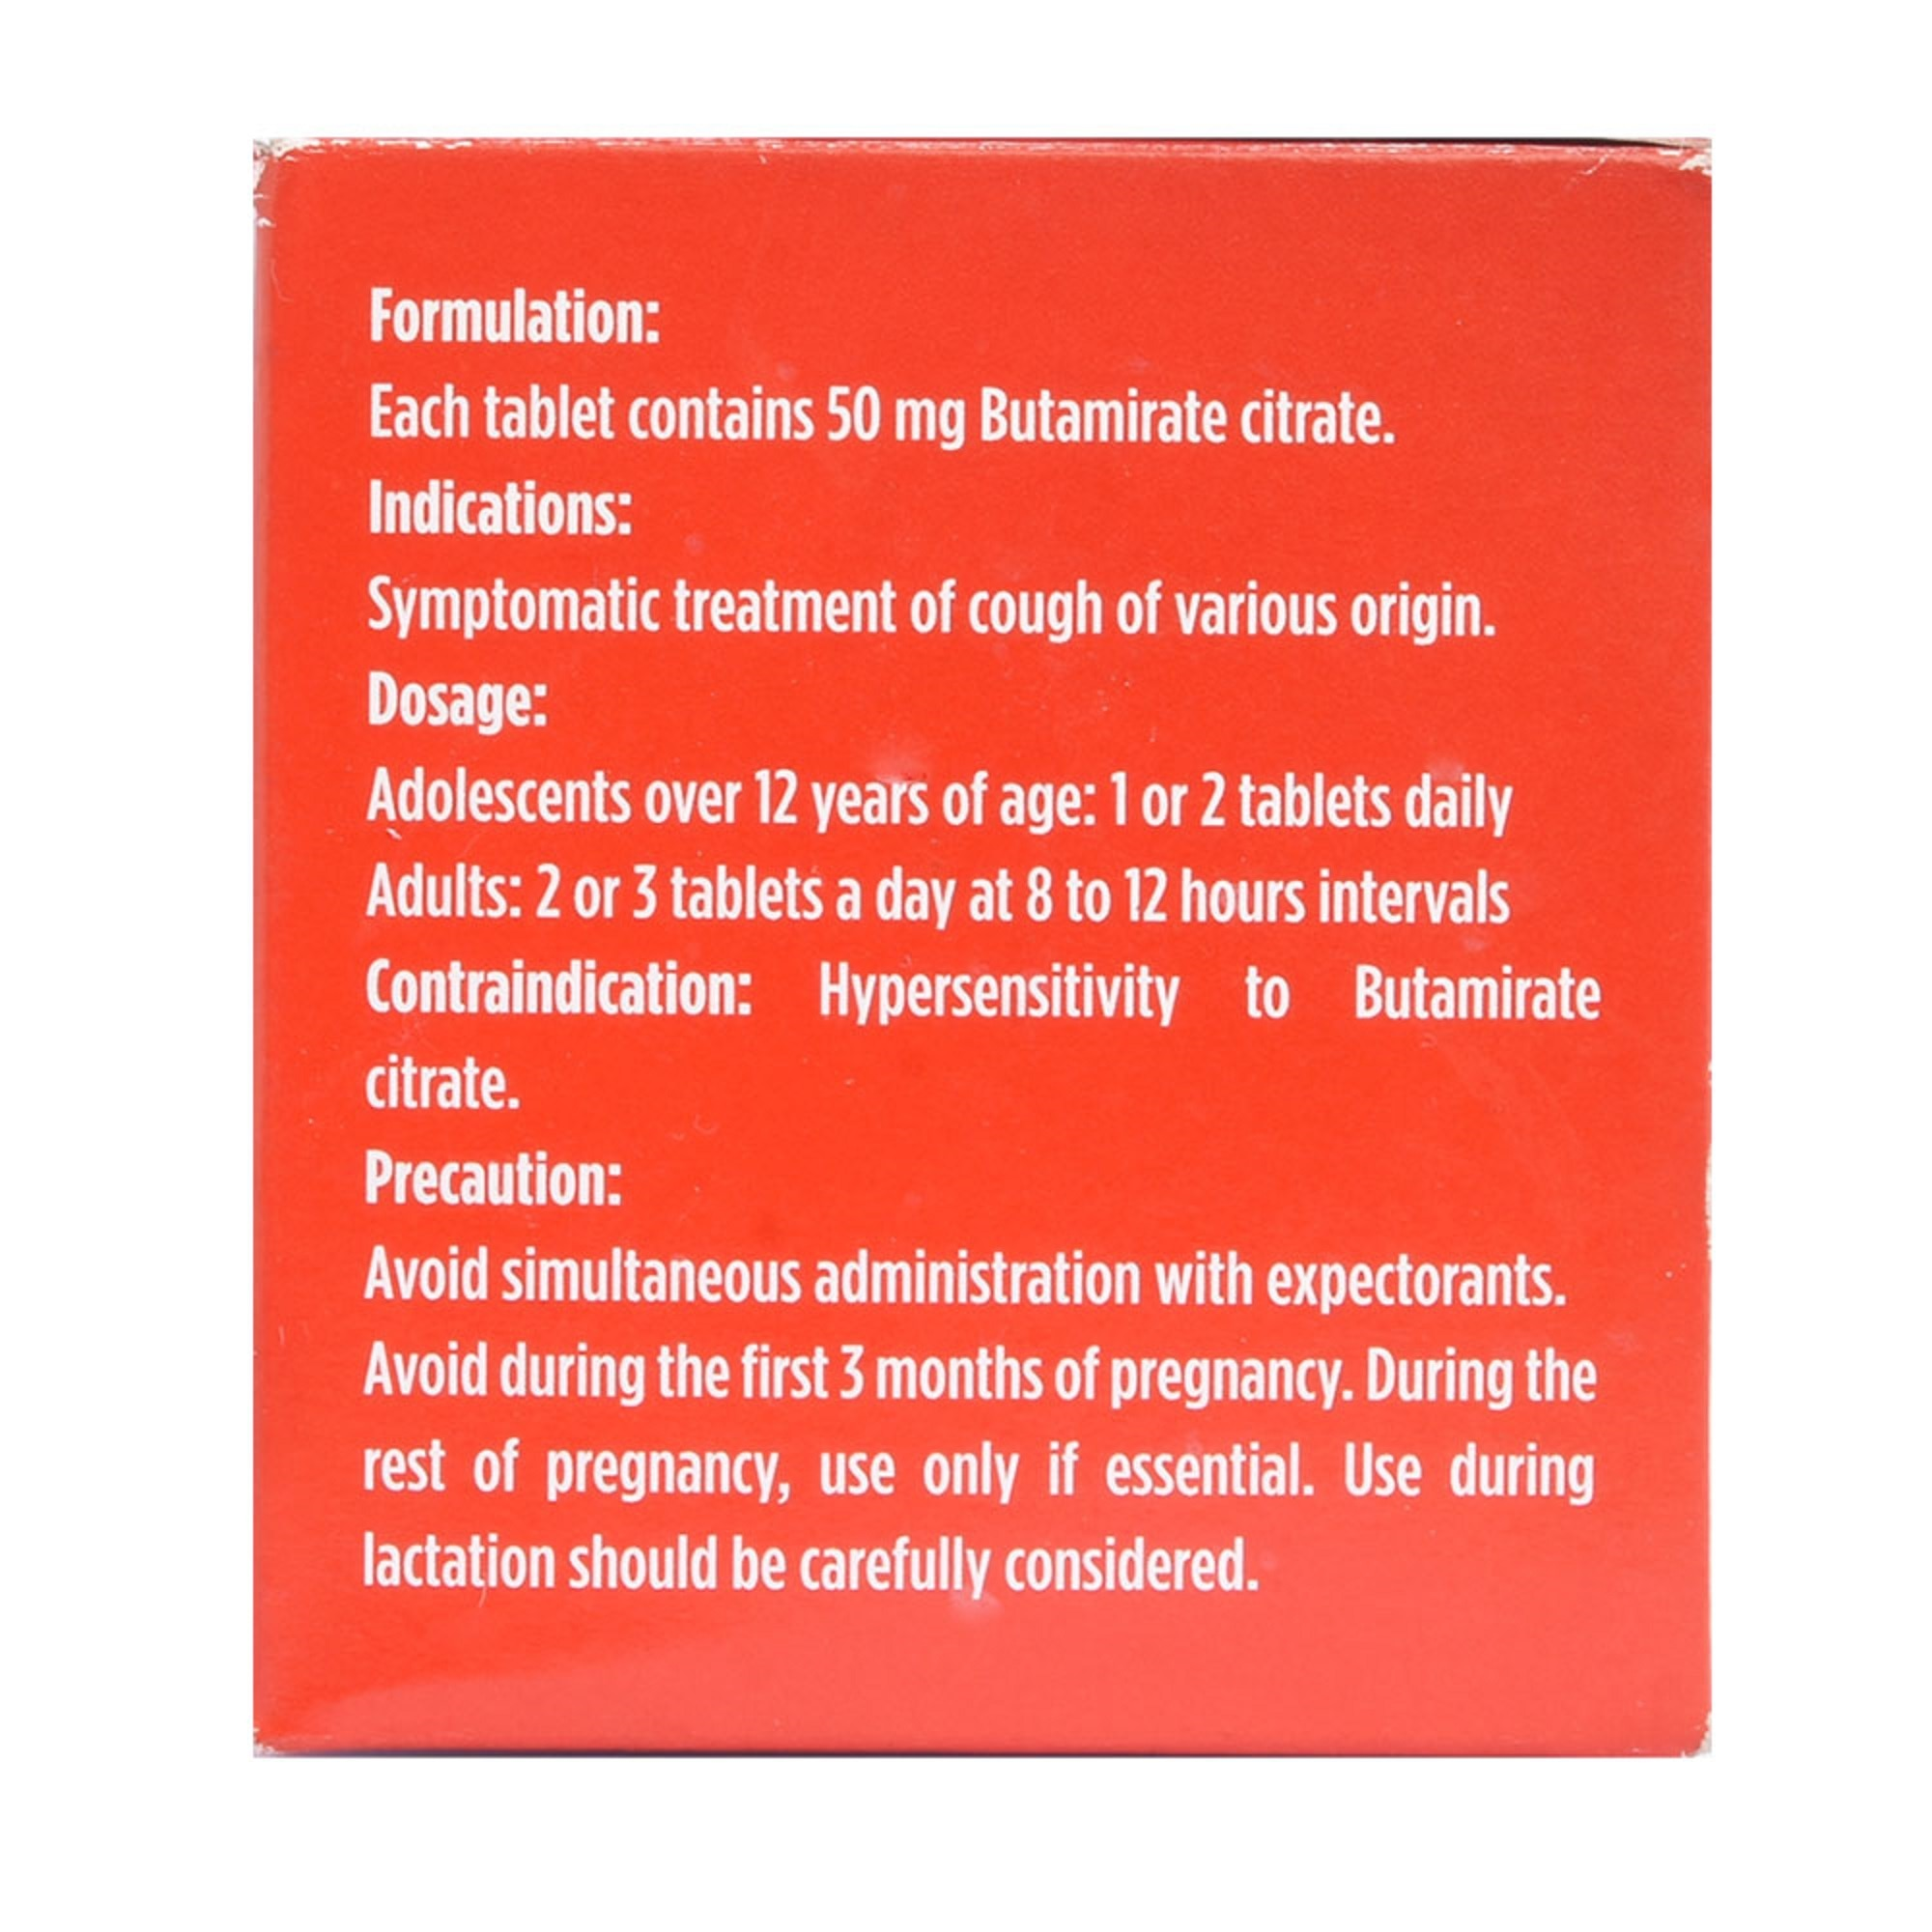 SINECODButamirate Citrate 50mg 1 Tablet,Cough, Cold and Flu